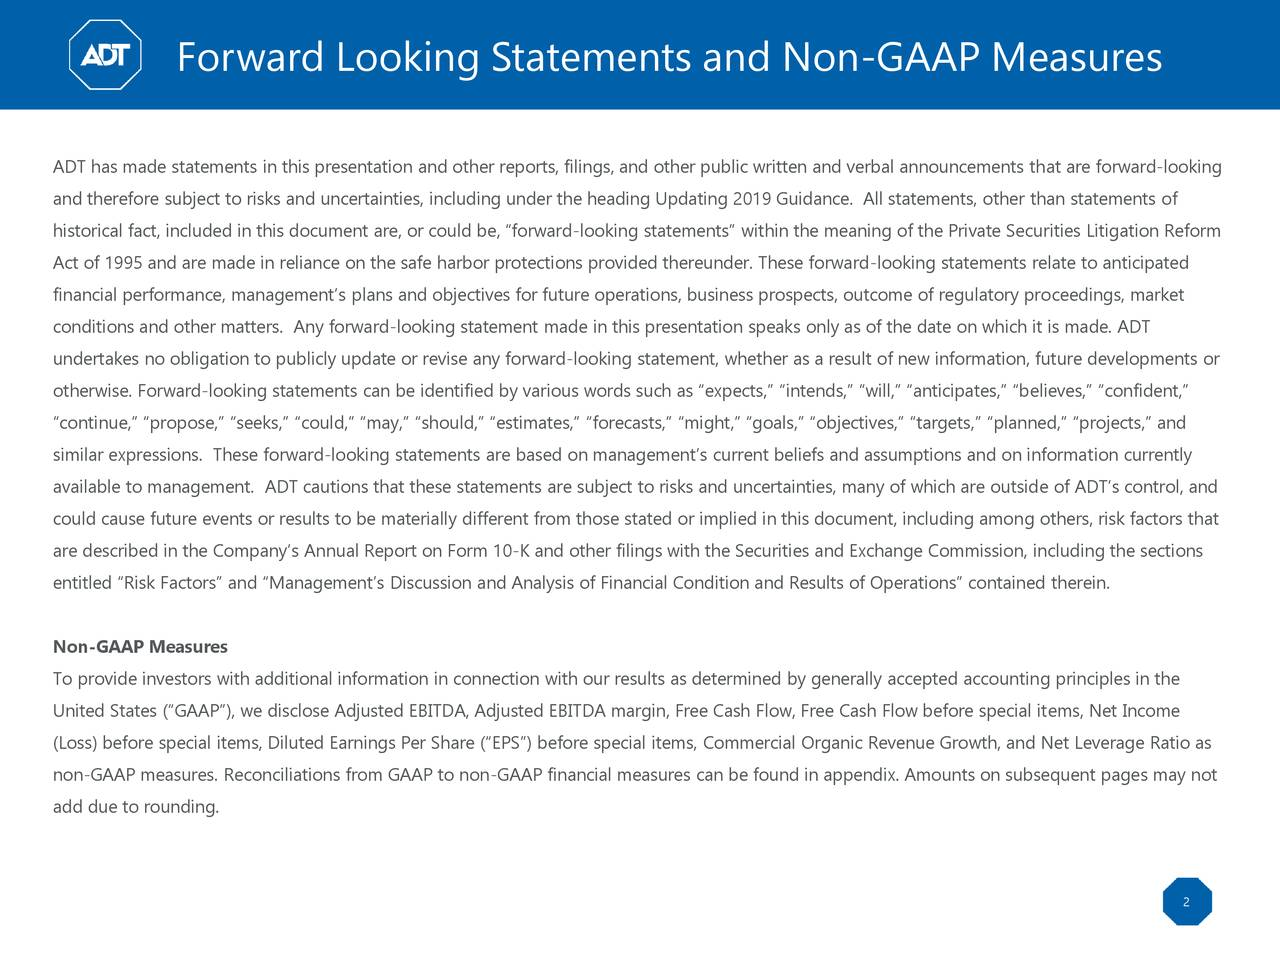 Forward Looking Statements and Non-GAAP Measures